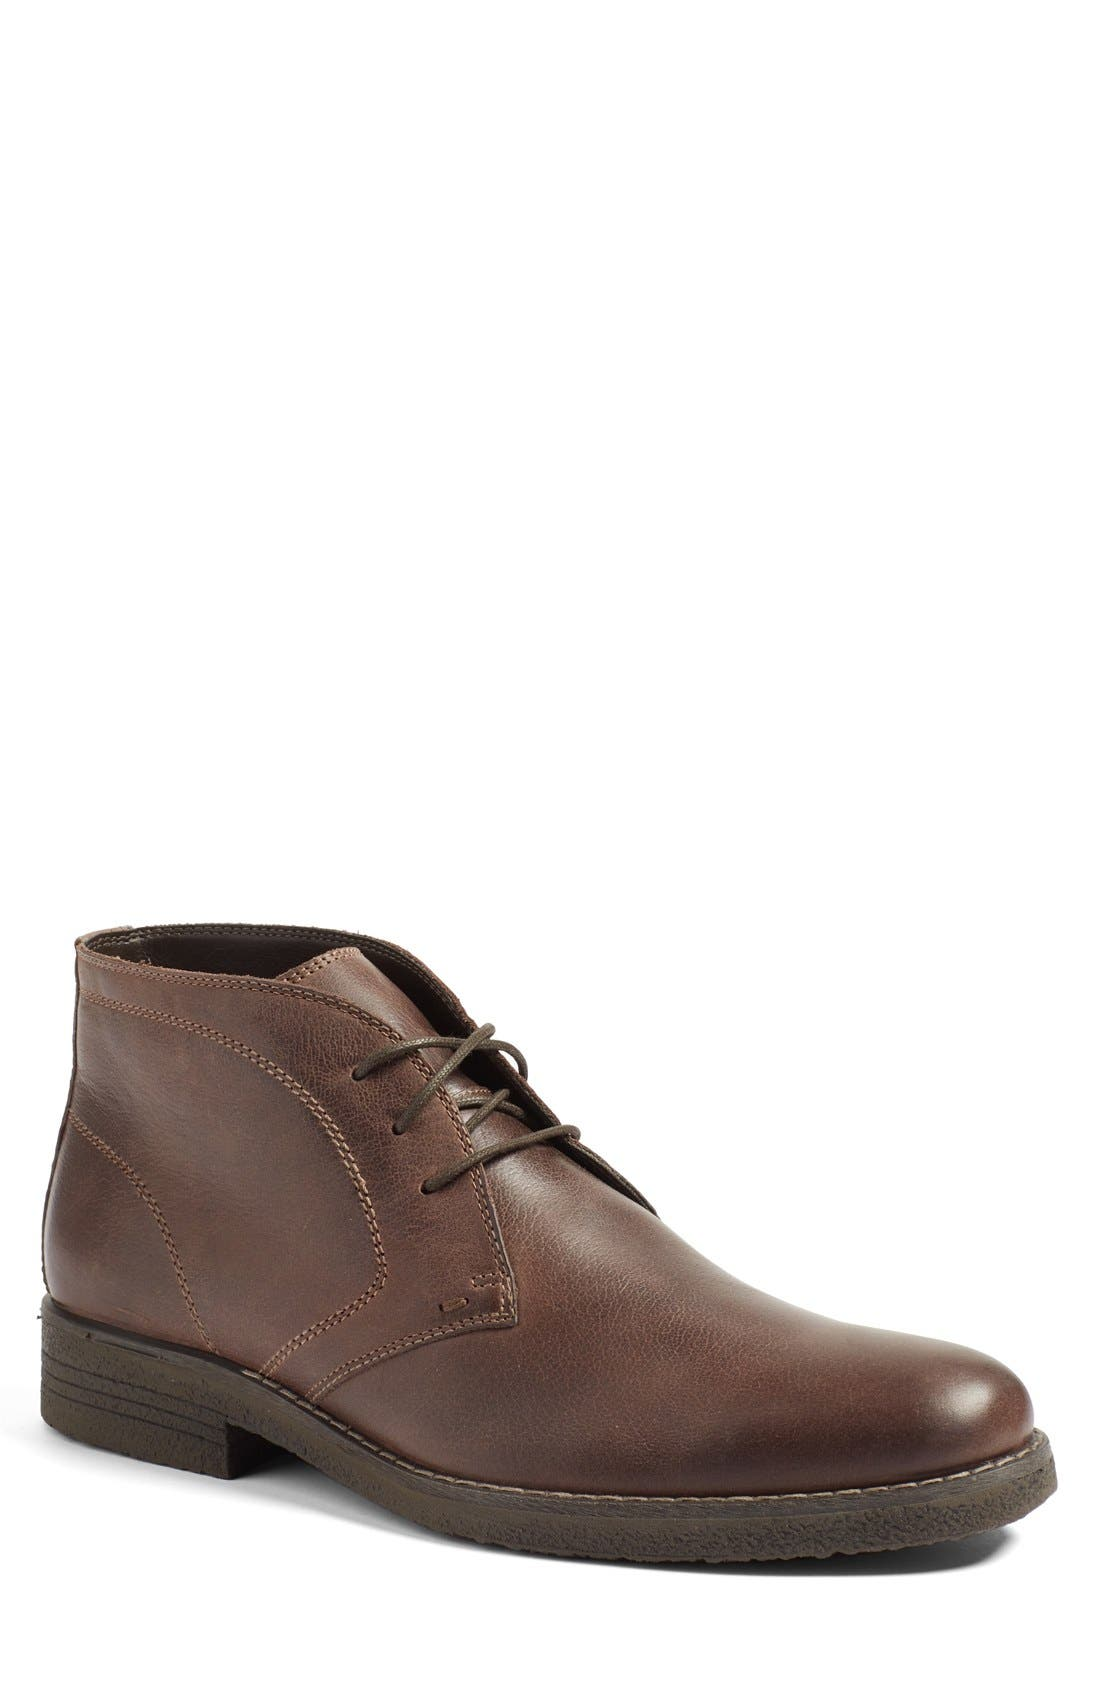 Alternate Image 1 Selected - 1901 'Tyler' Chukka Boot (Men)